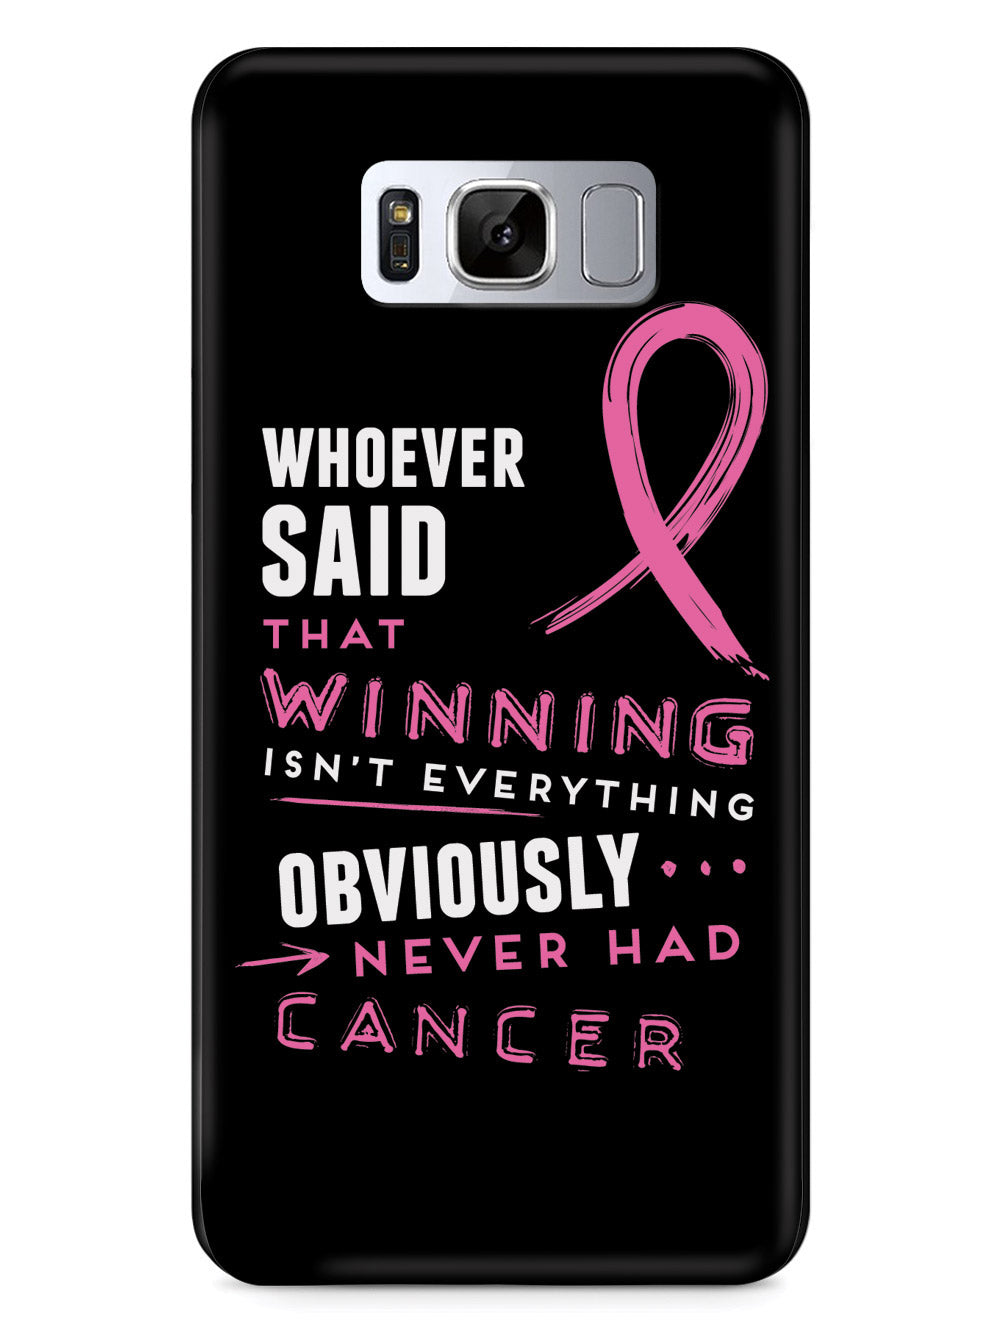 Winning is Everything - Cancer Awareness Pink Case